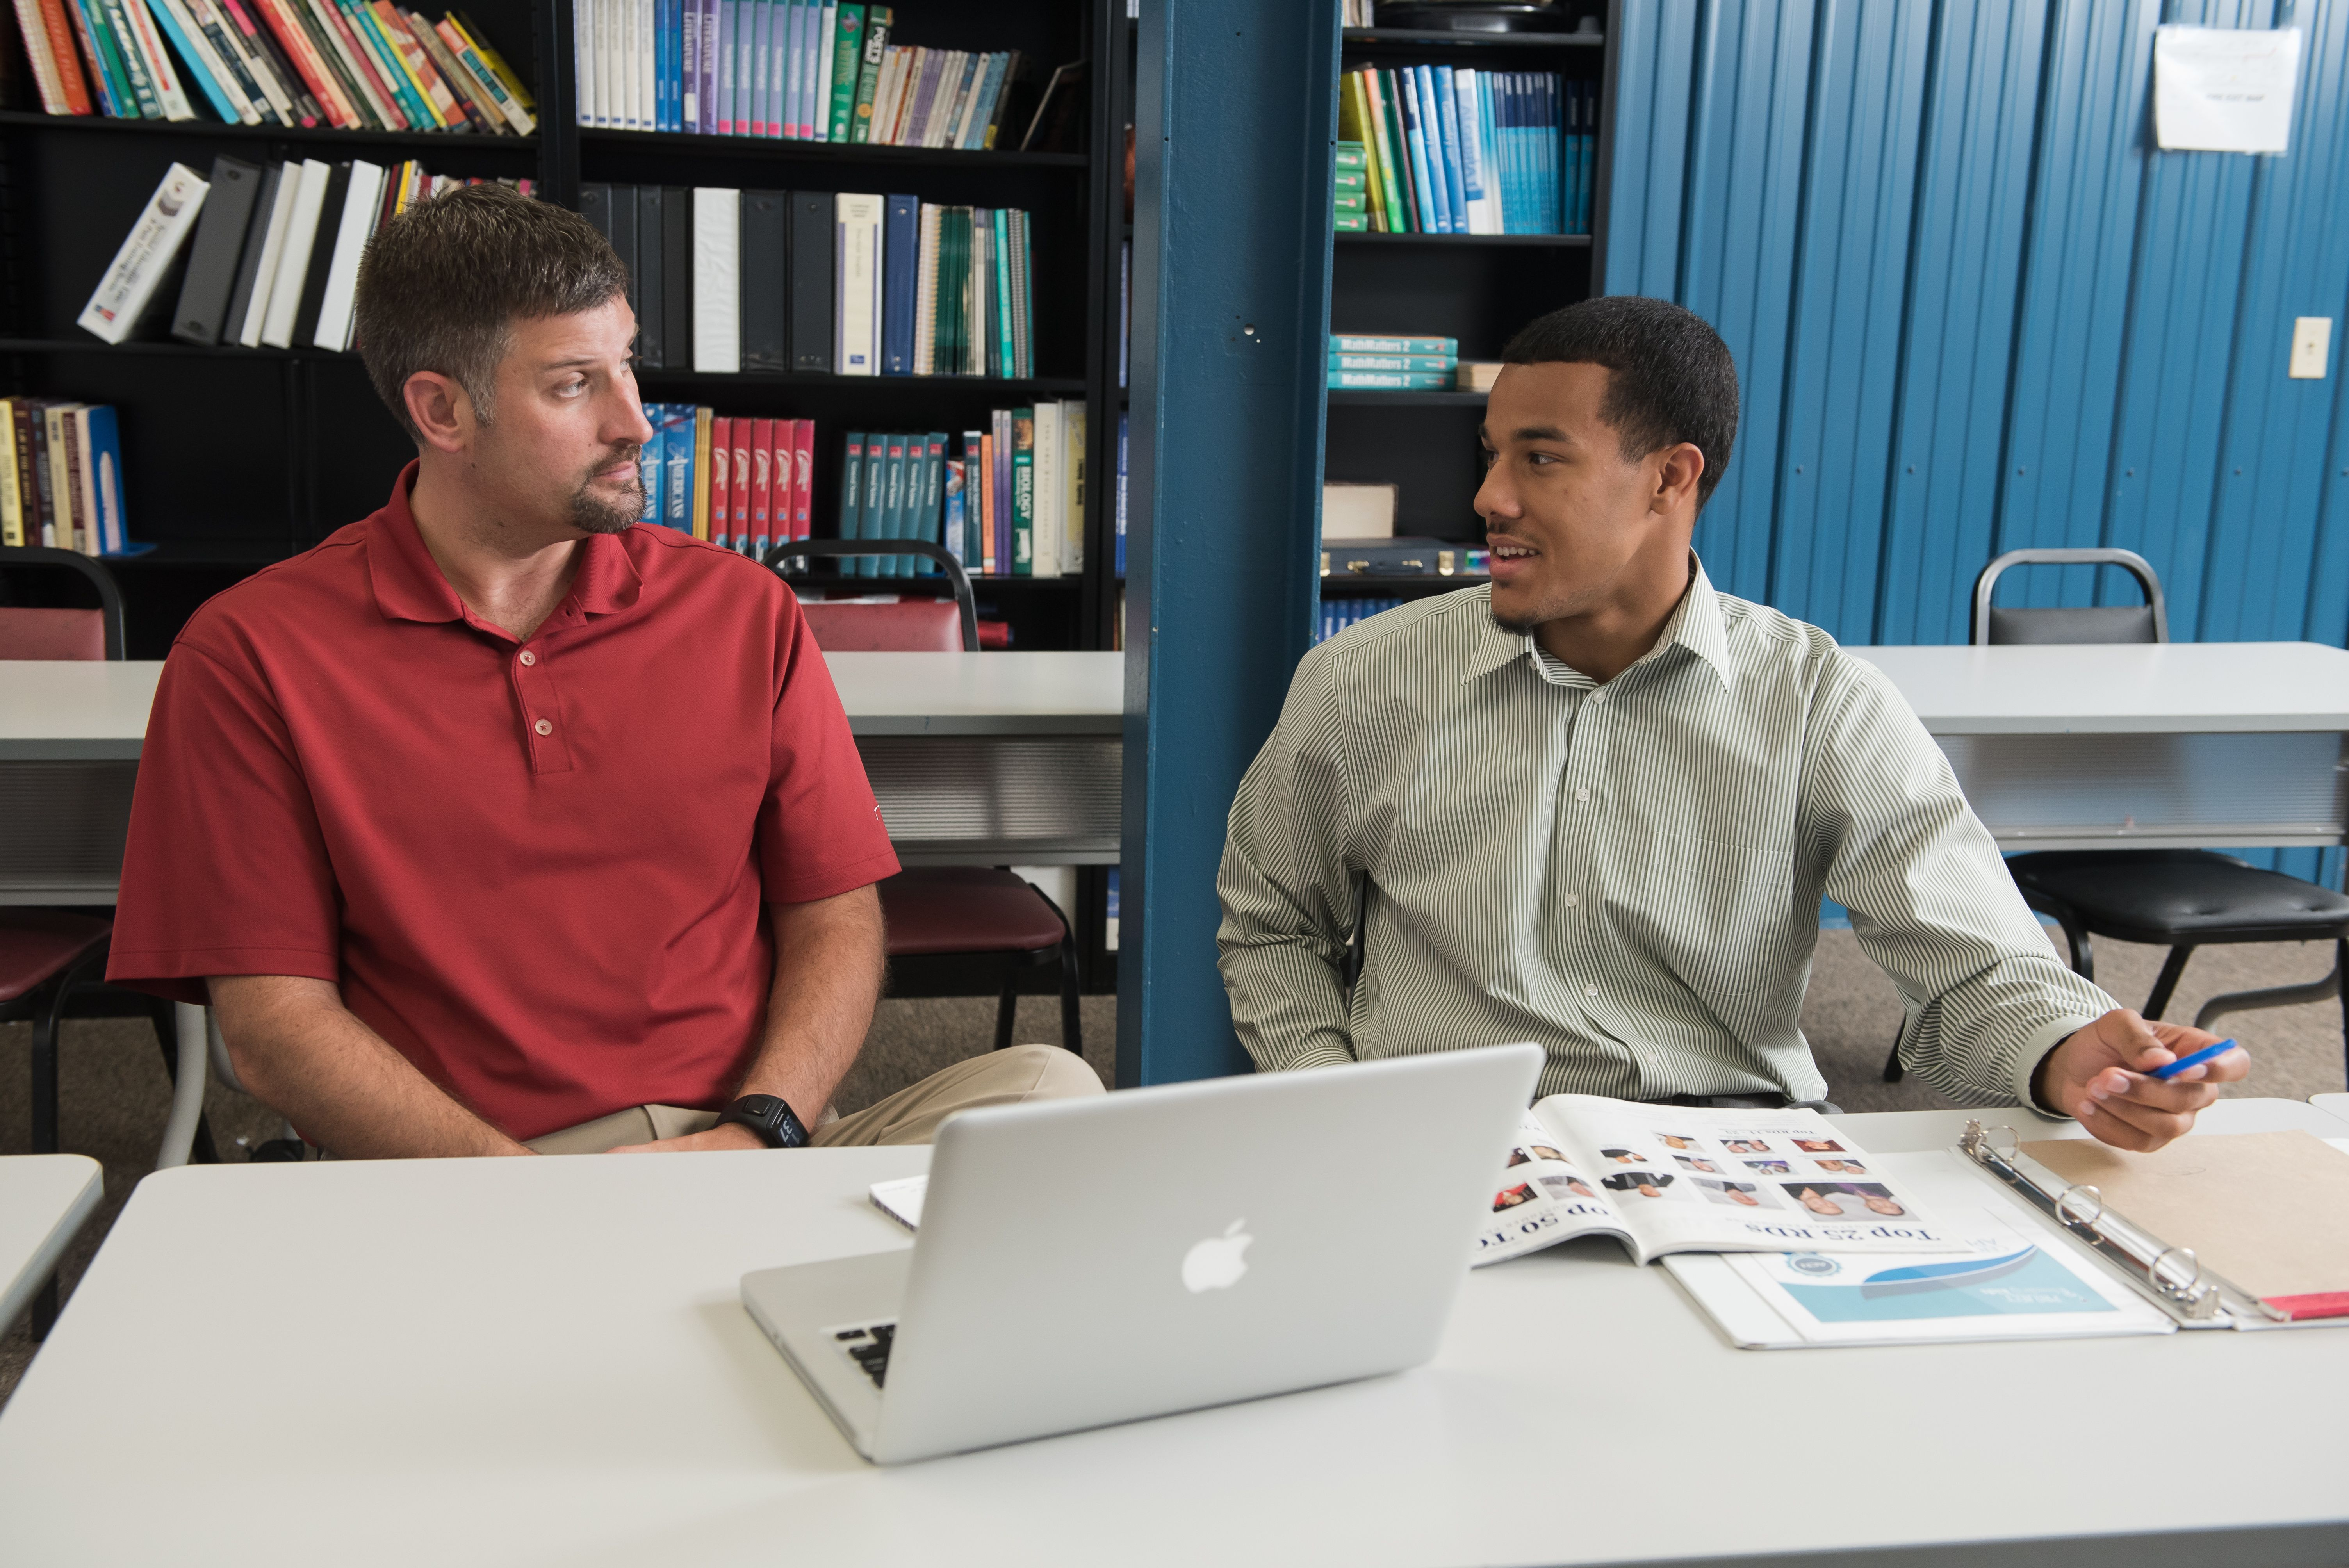 Student and professor discussing class work